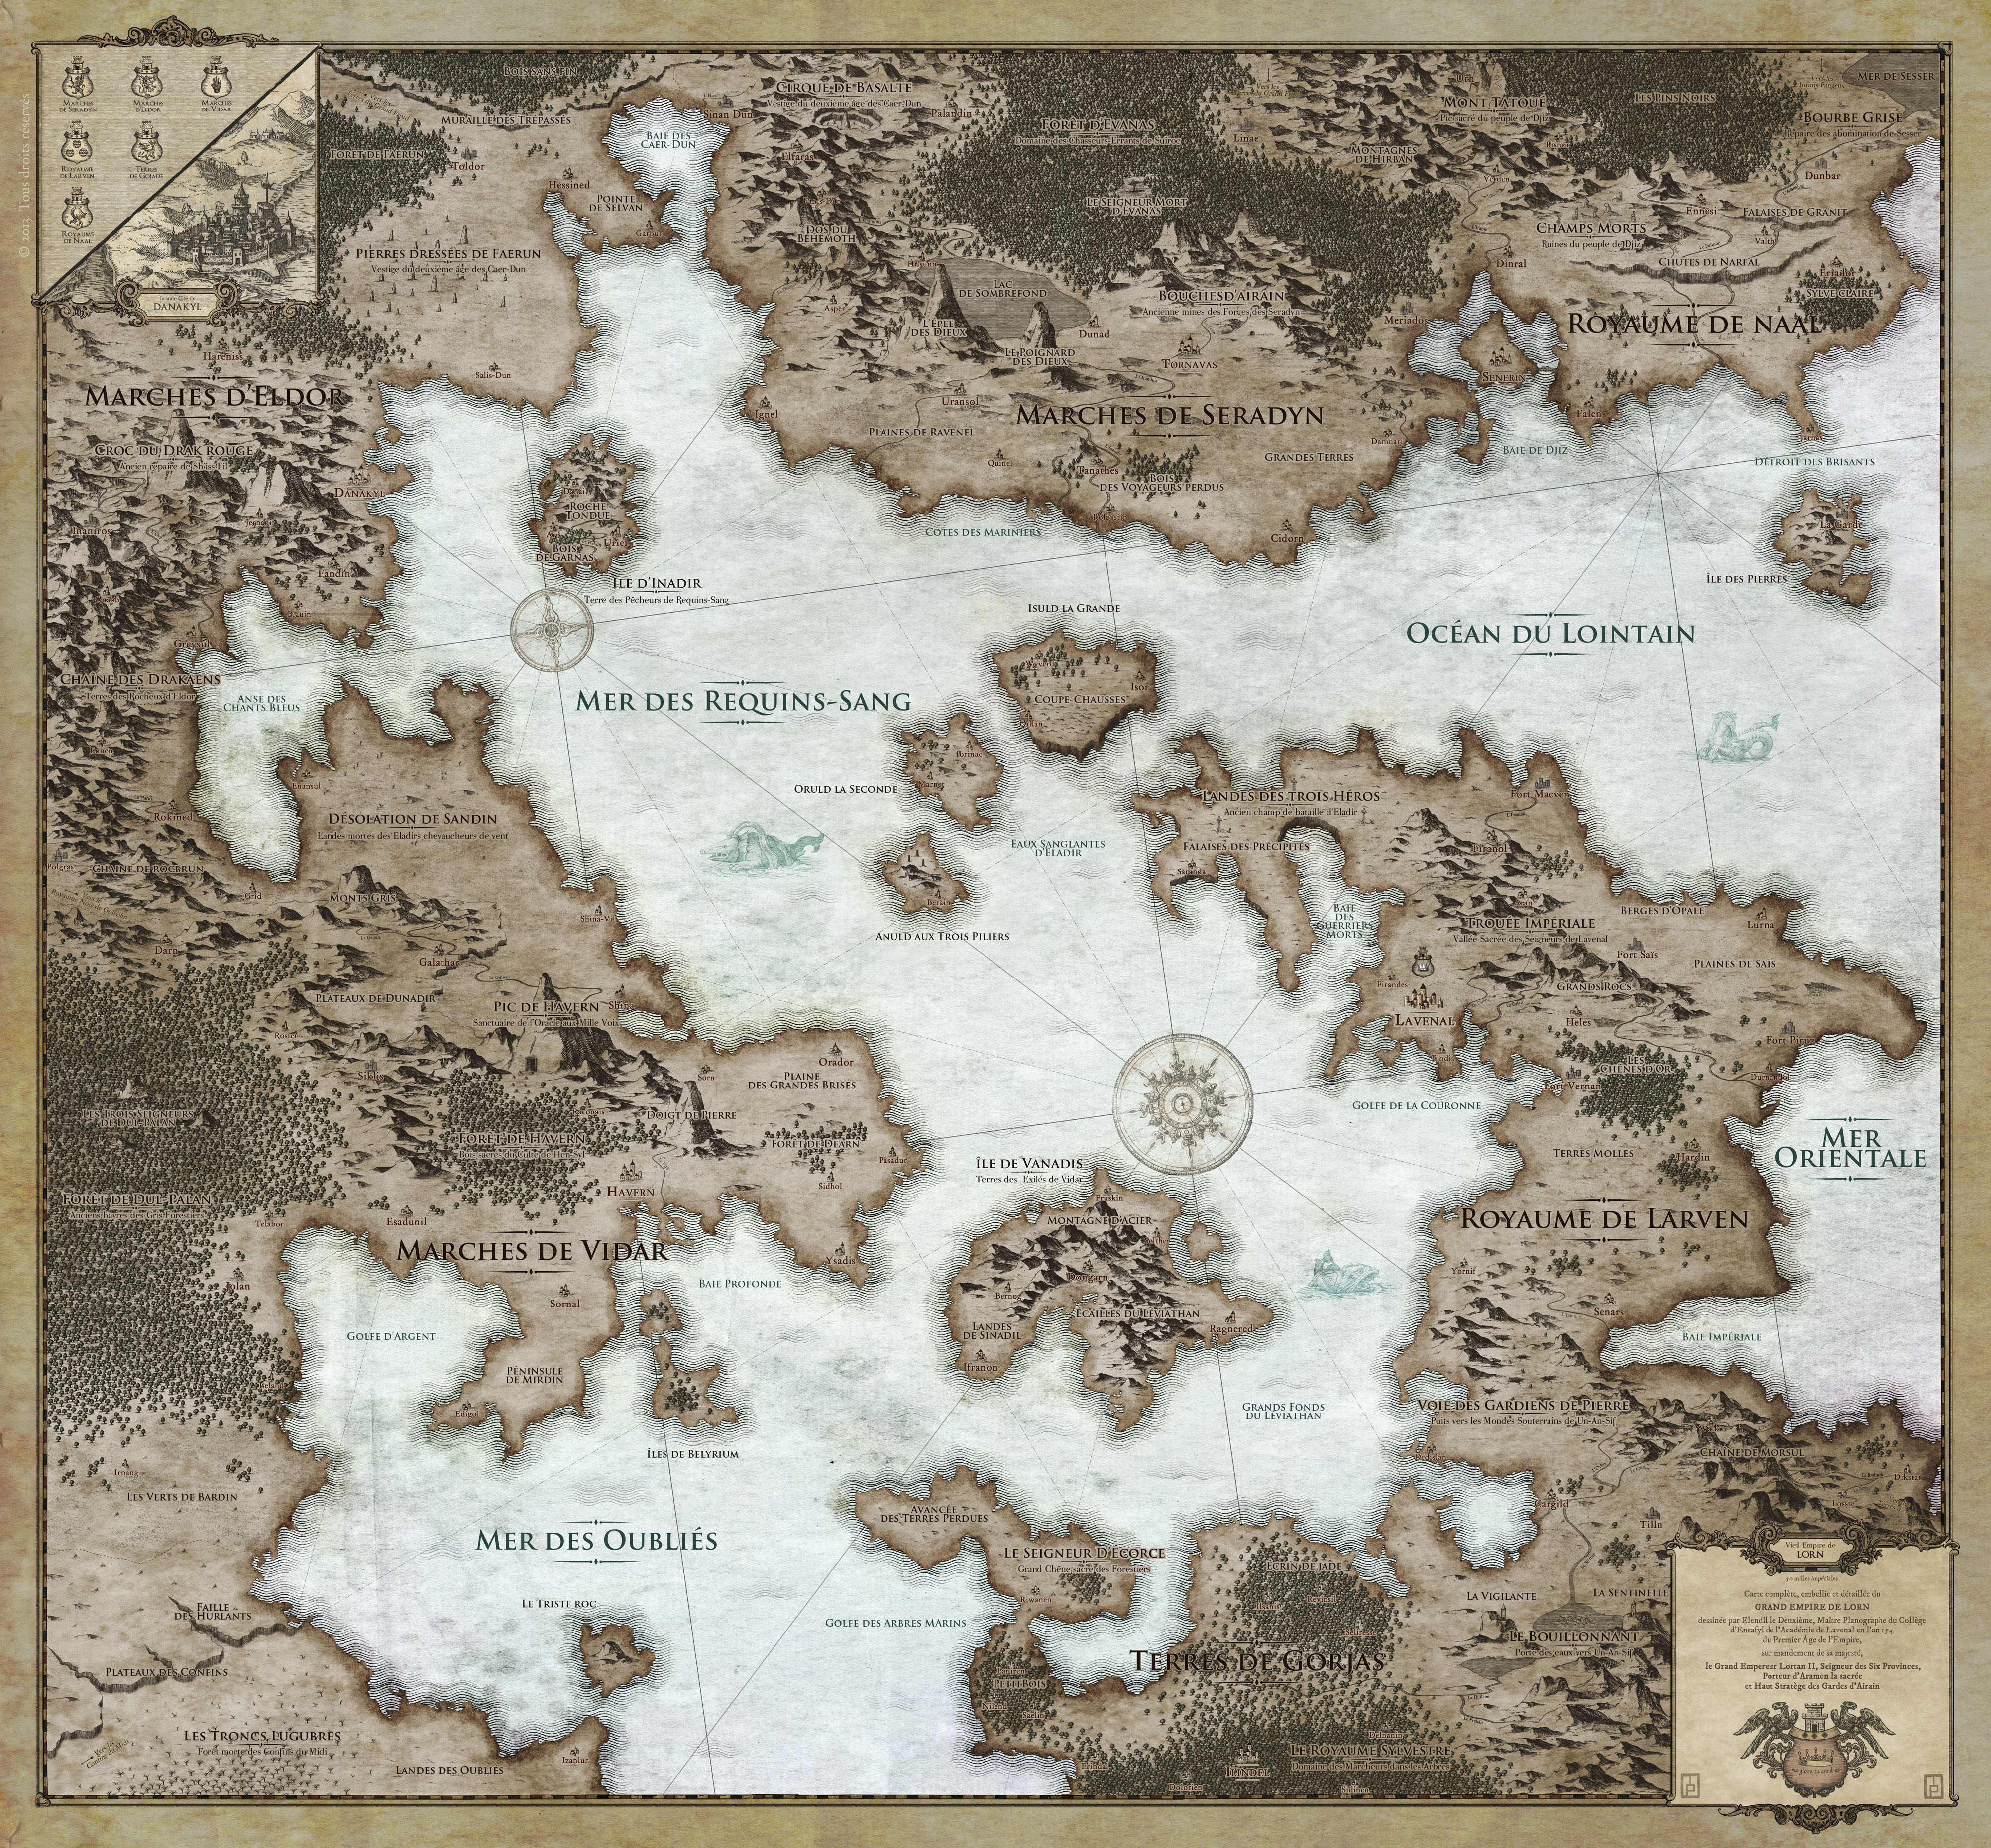 Old Empire of Lorn - personnal project - 3rd place at 2013 Storyslinger mapmaking contest.